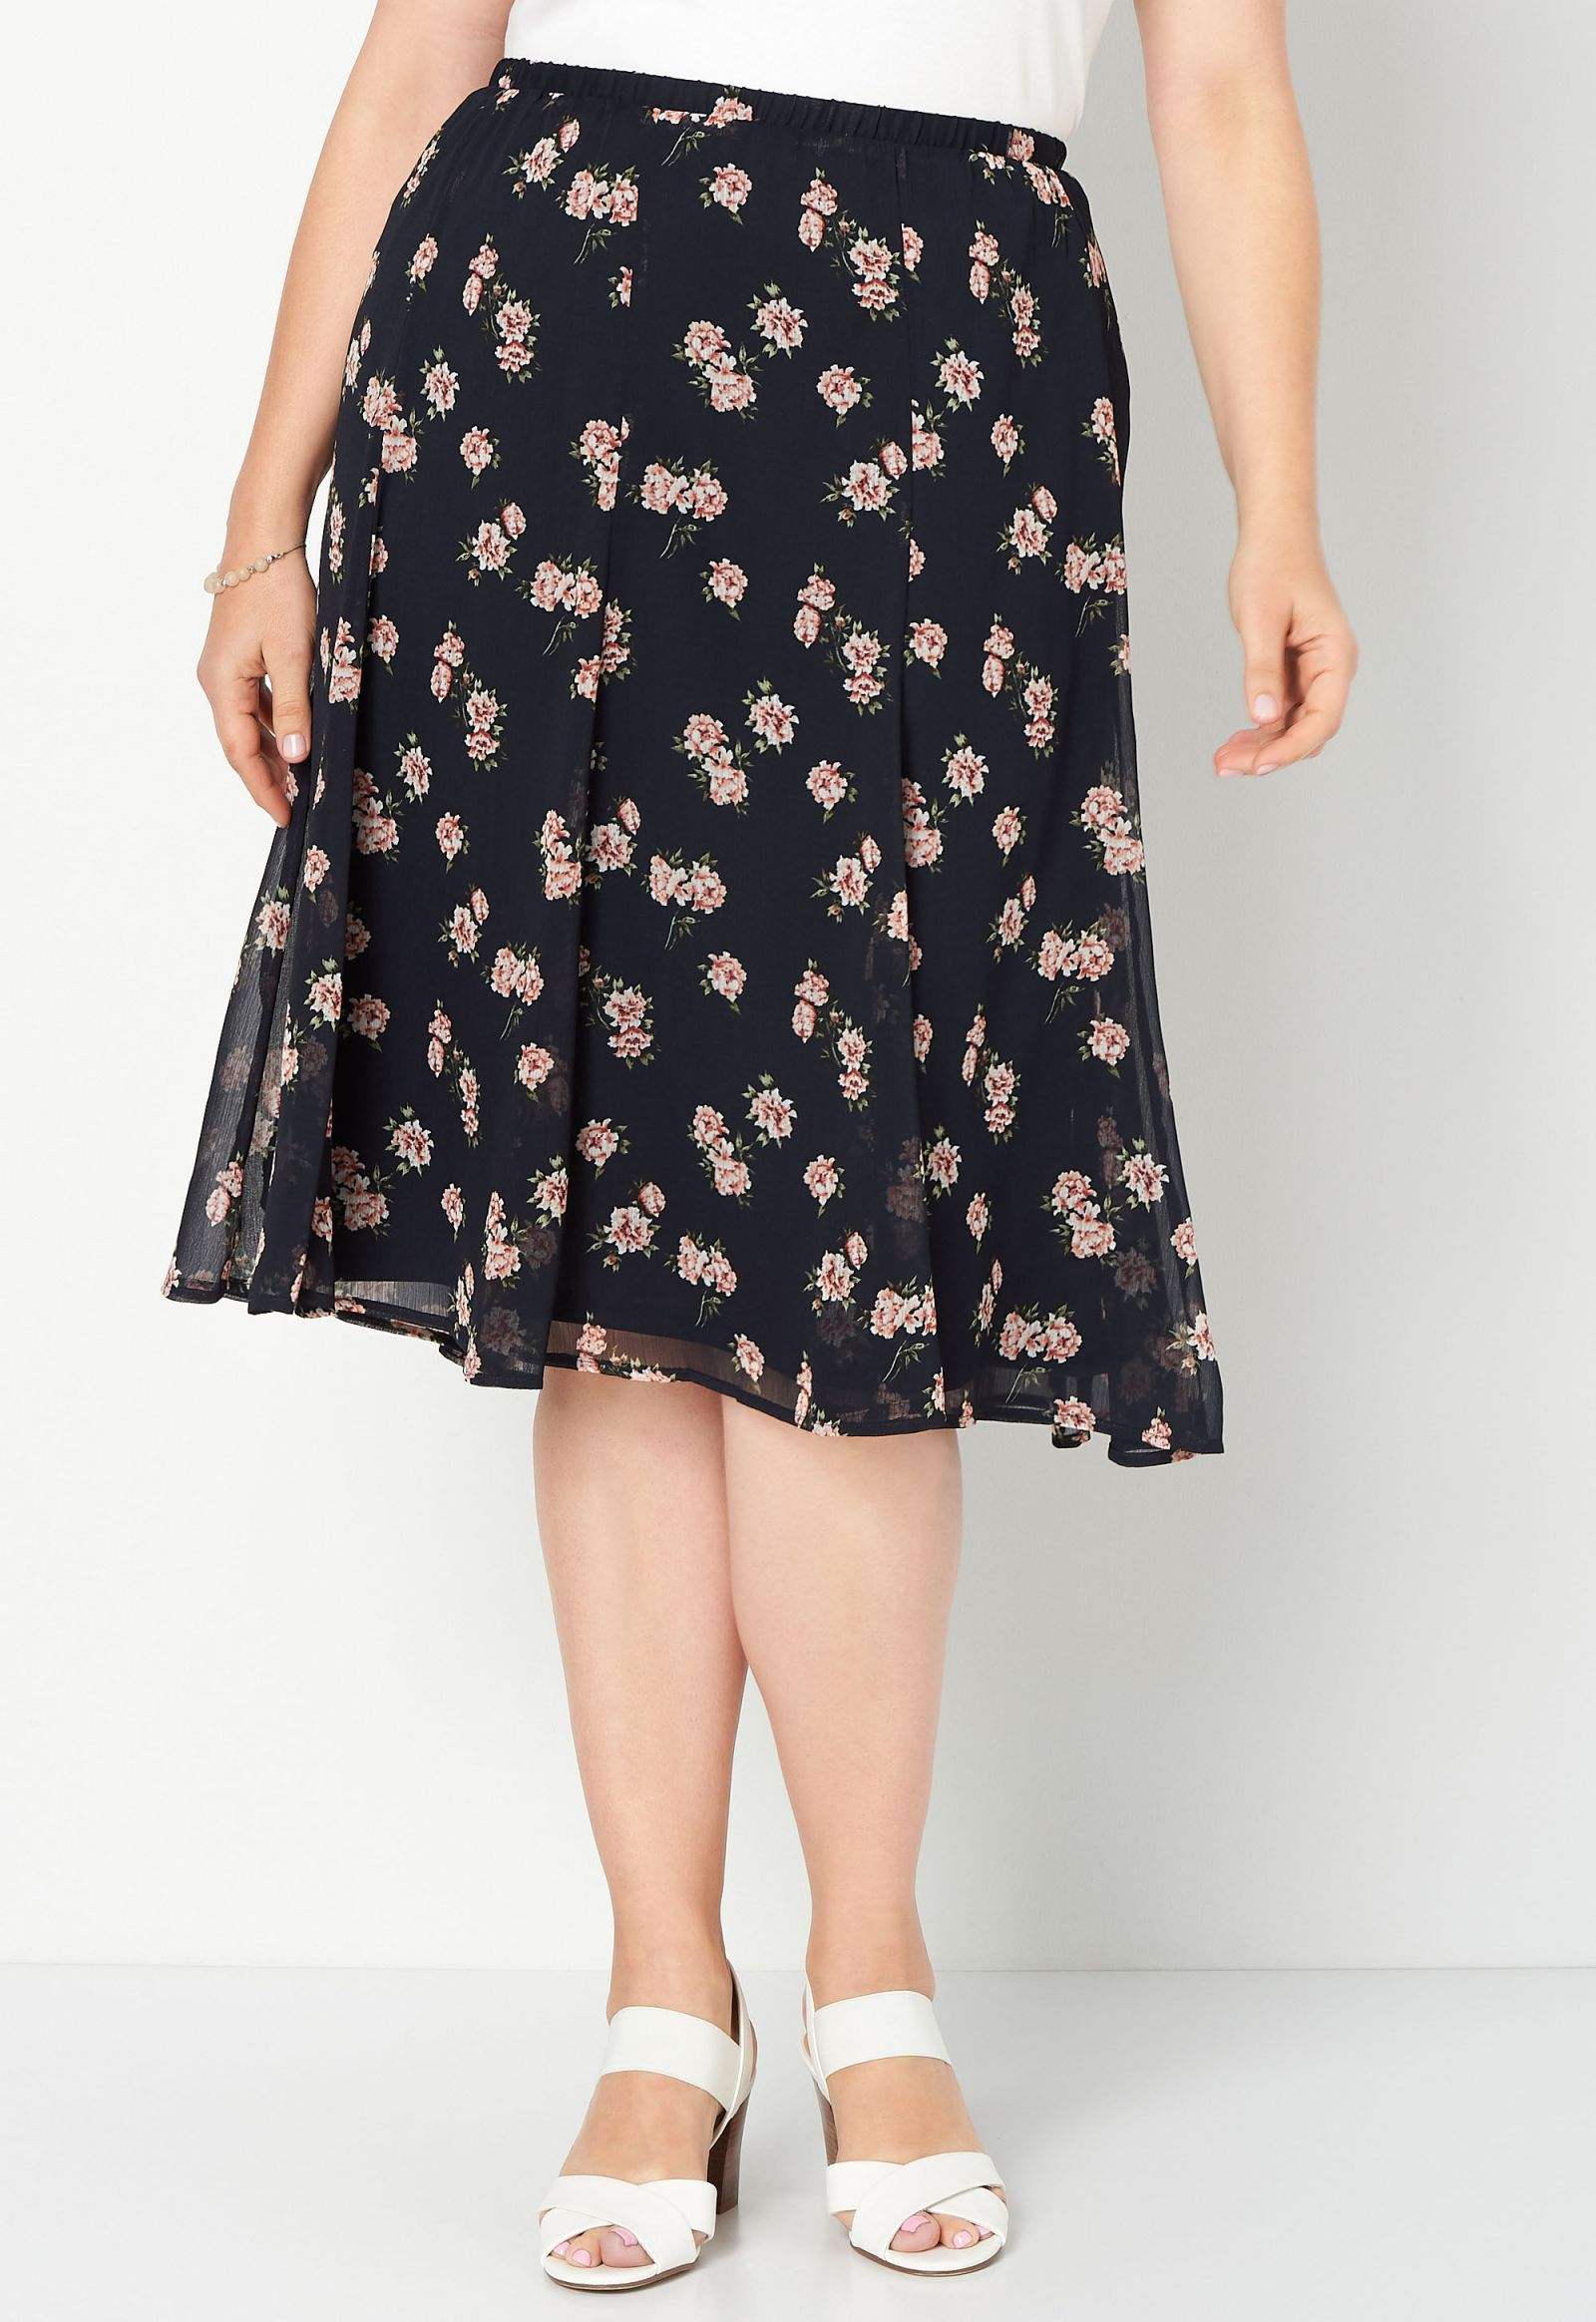 Floral Printed Plus Size Skirt 2